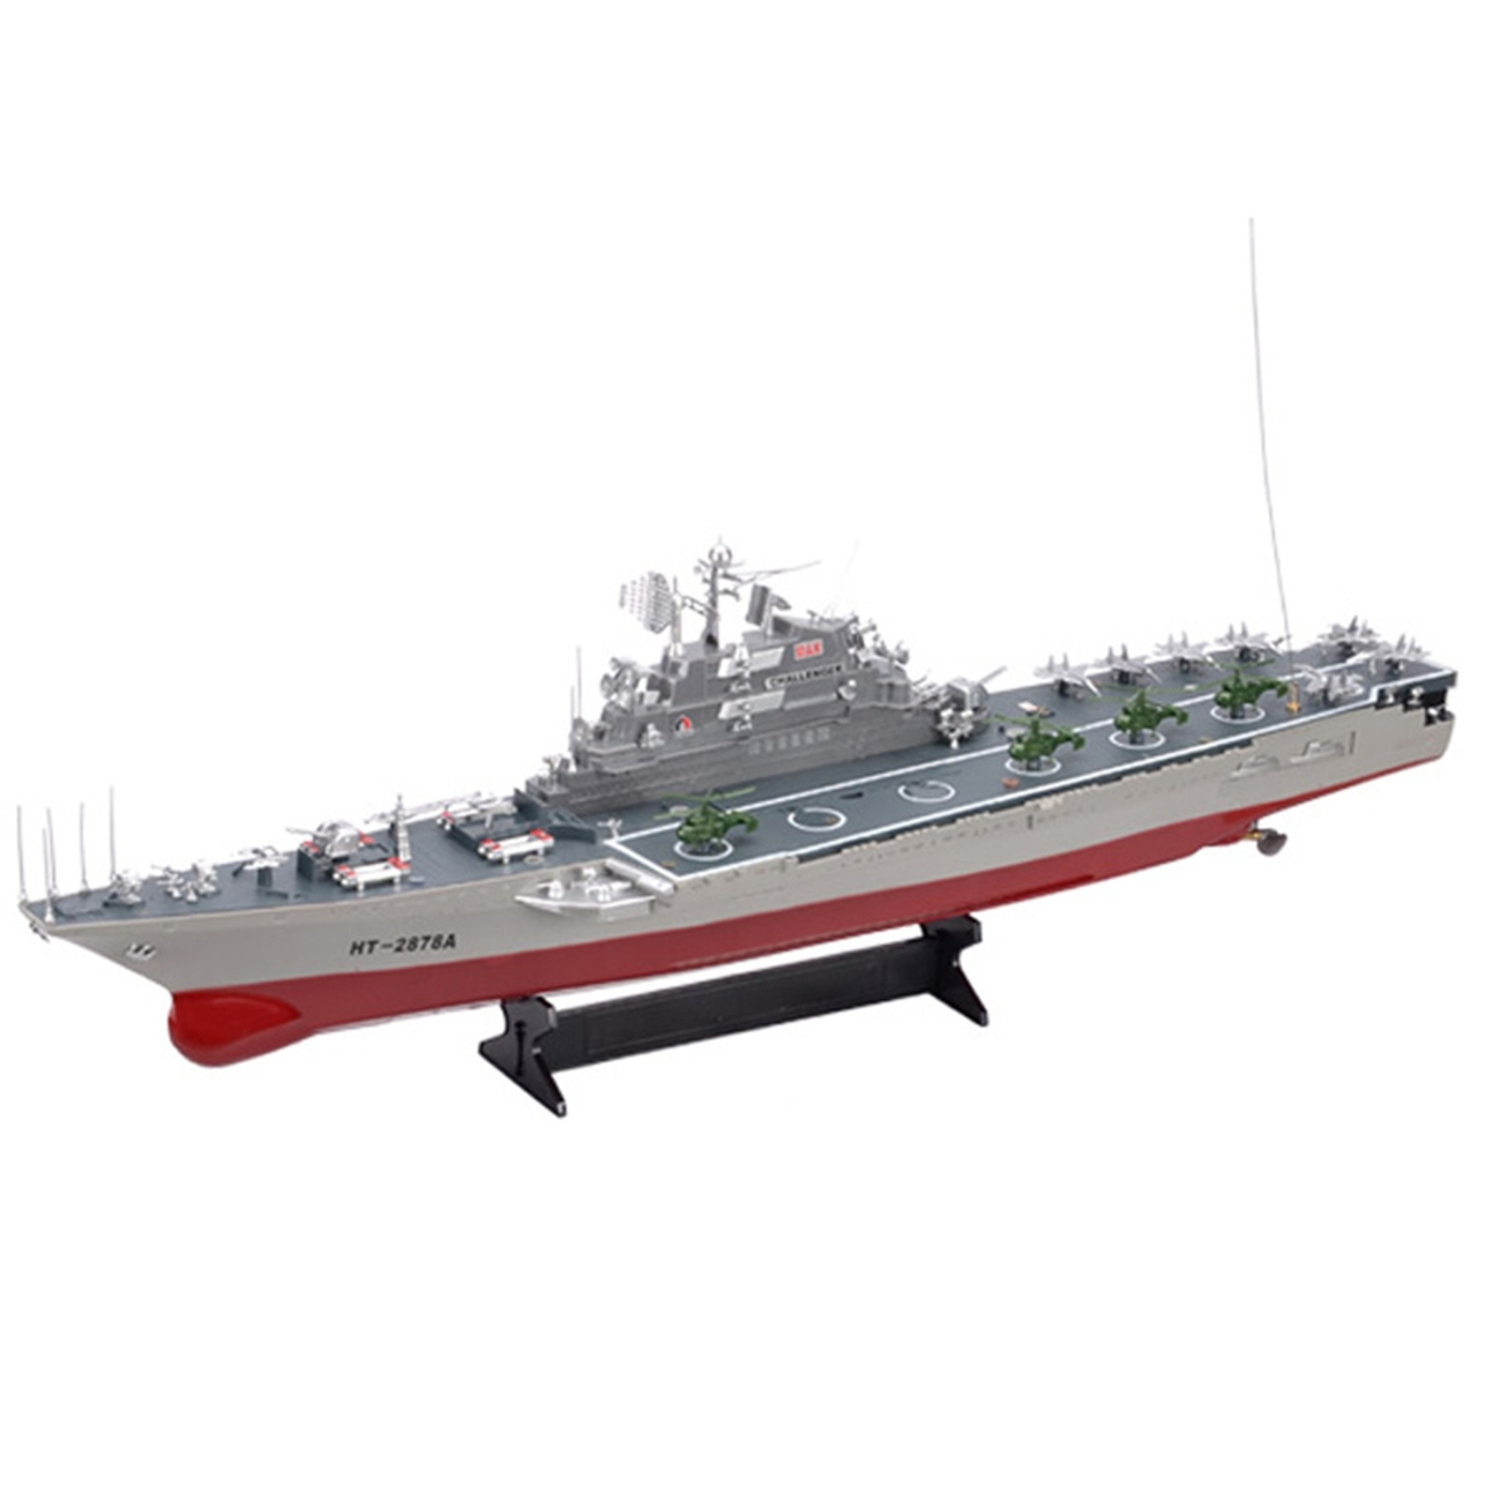 "30"" HT-2878 R C Large Warship Military Battleship Challenger Boat with Two Very Fast... by"